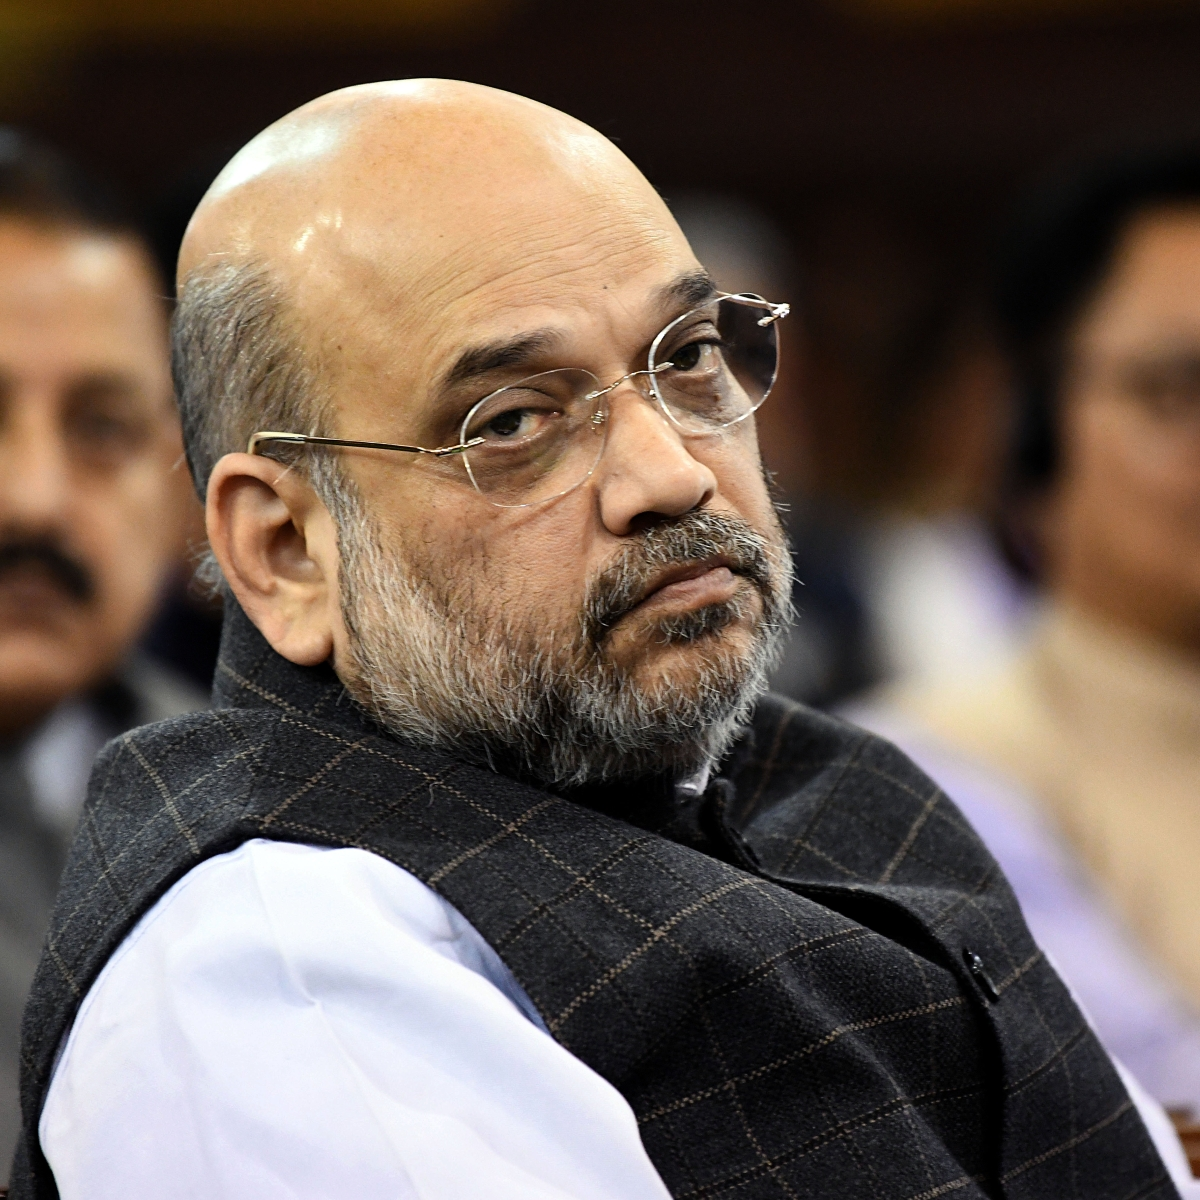 'Mooh se supari nikal ke baat kar': Cong handle mocks Amit Shah for failing to pronounce Aatma Nirbhar